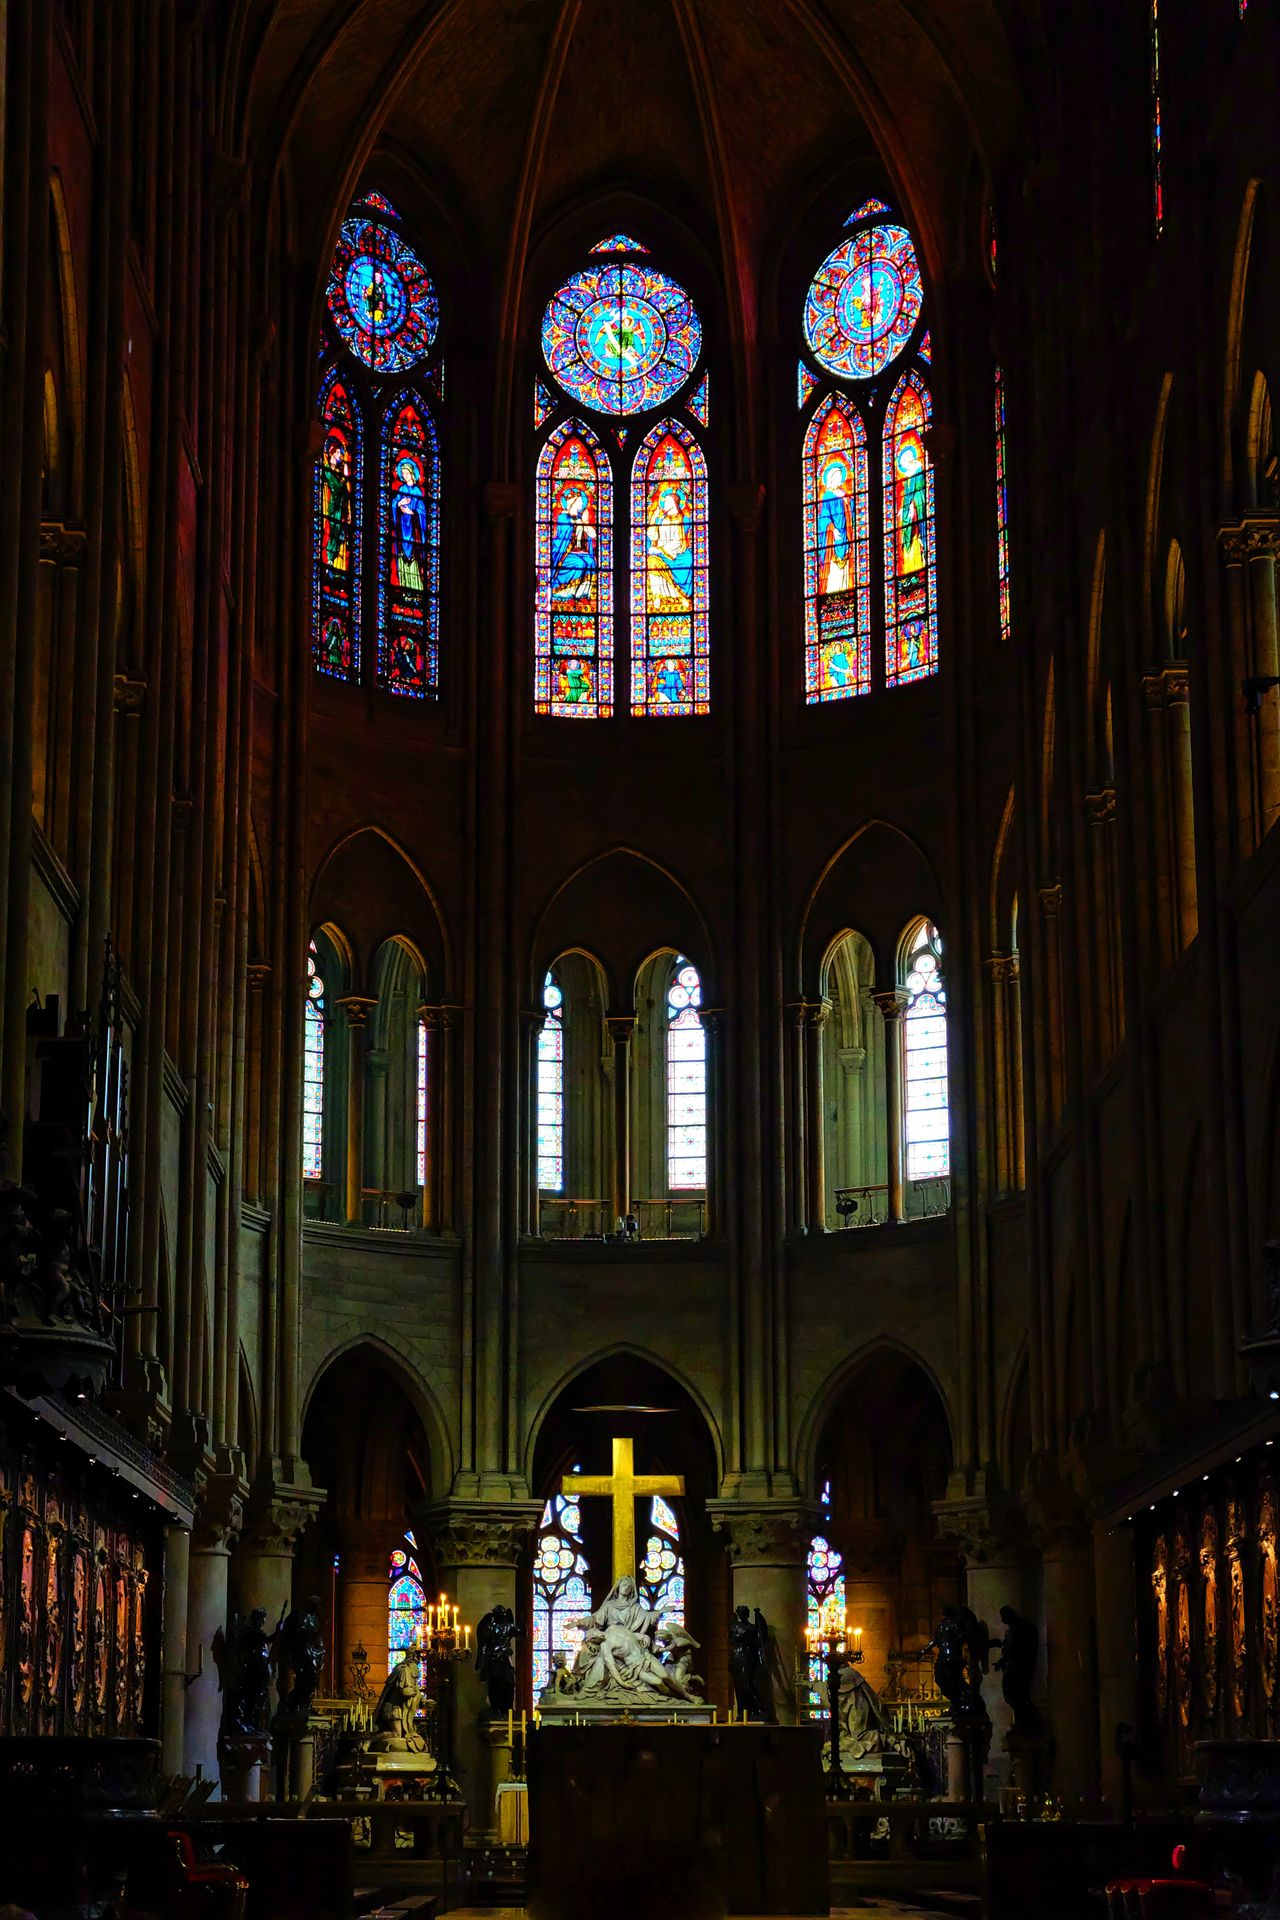 Cathedral Cathedrale Notre Dame Notre Dame Cathedral Notre Dame Cathedral Paris Notre Dame De Paris Notre-Dame Place Of Worship Religion Stained Glass Stained Glass Stained Glass Art Stained Glass Window